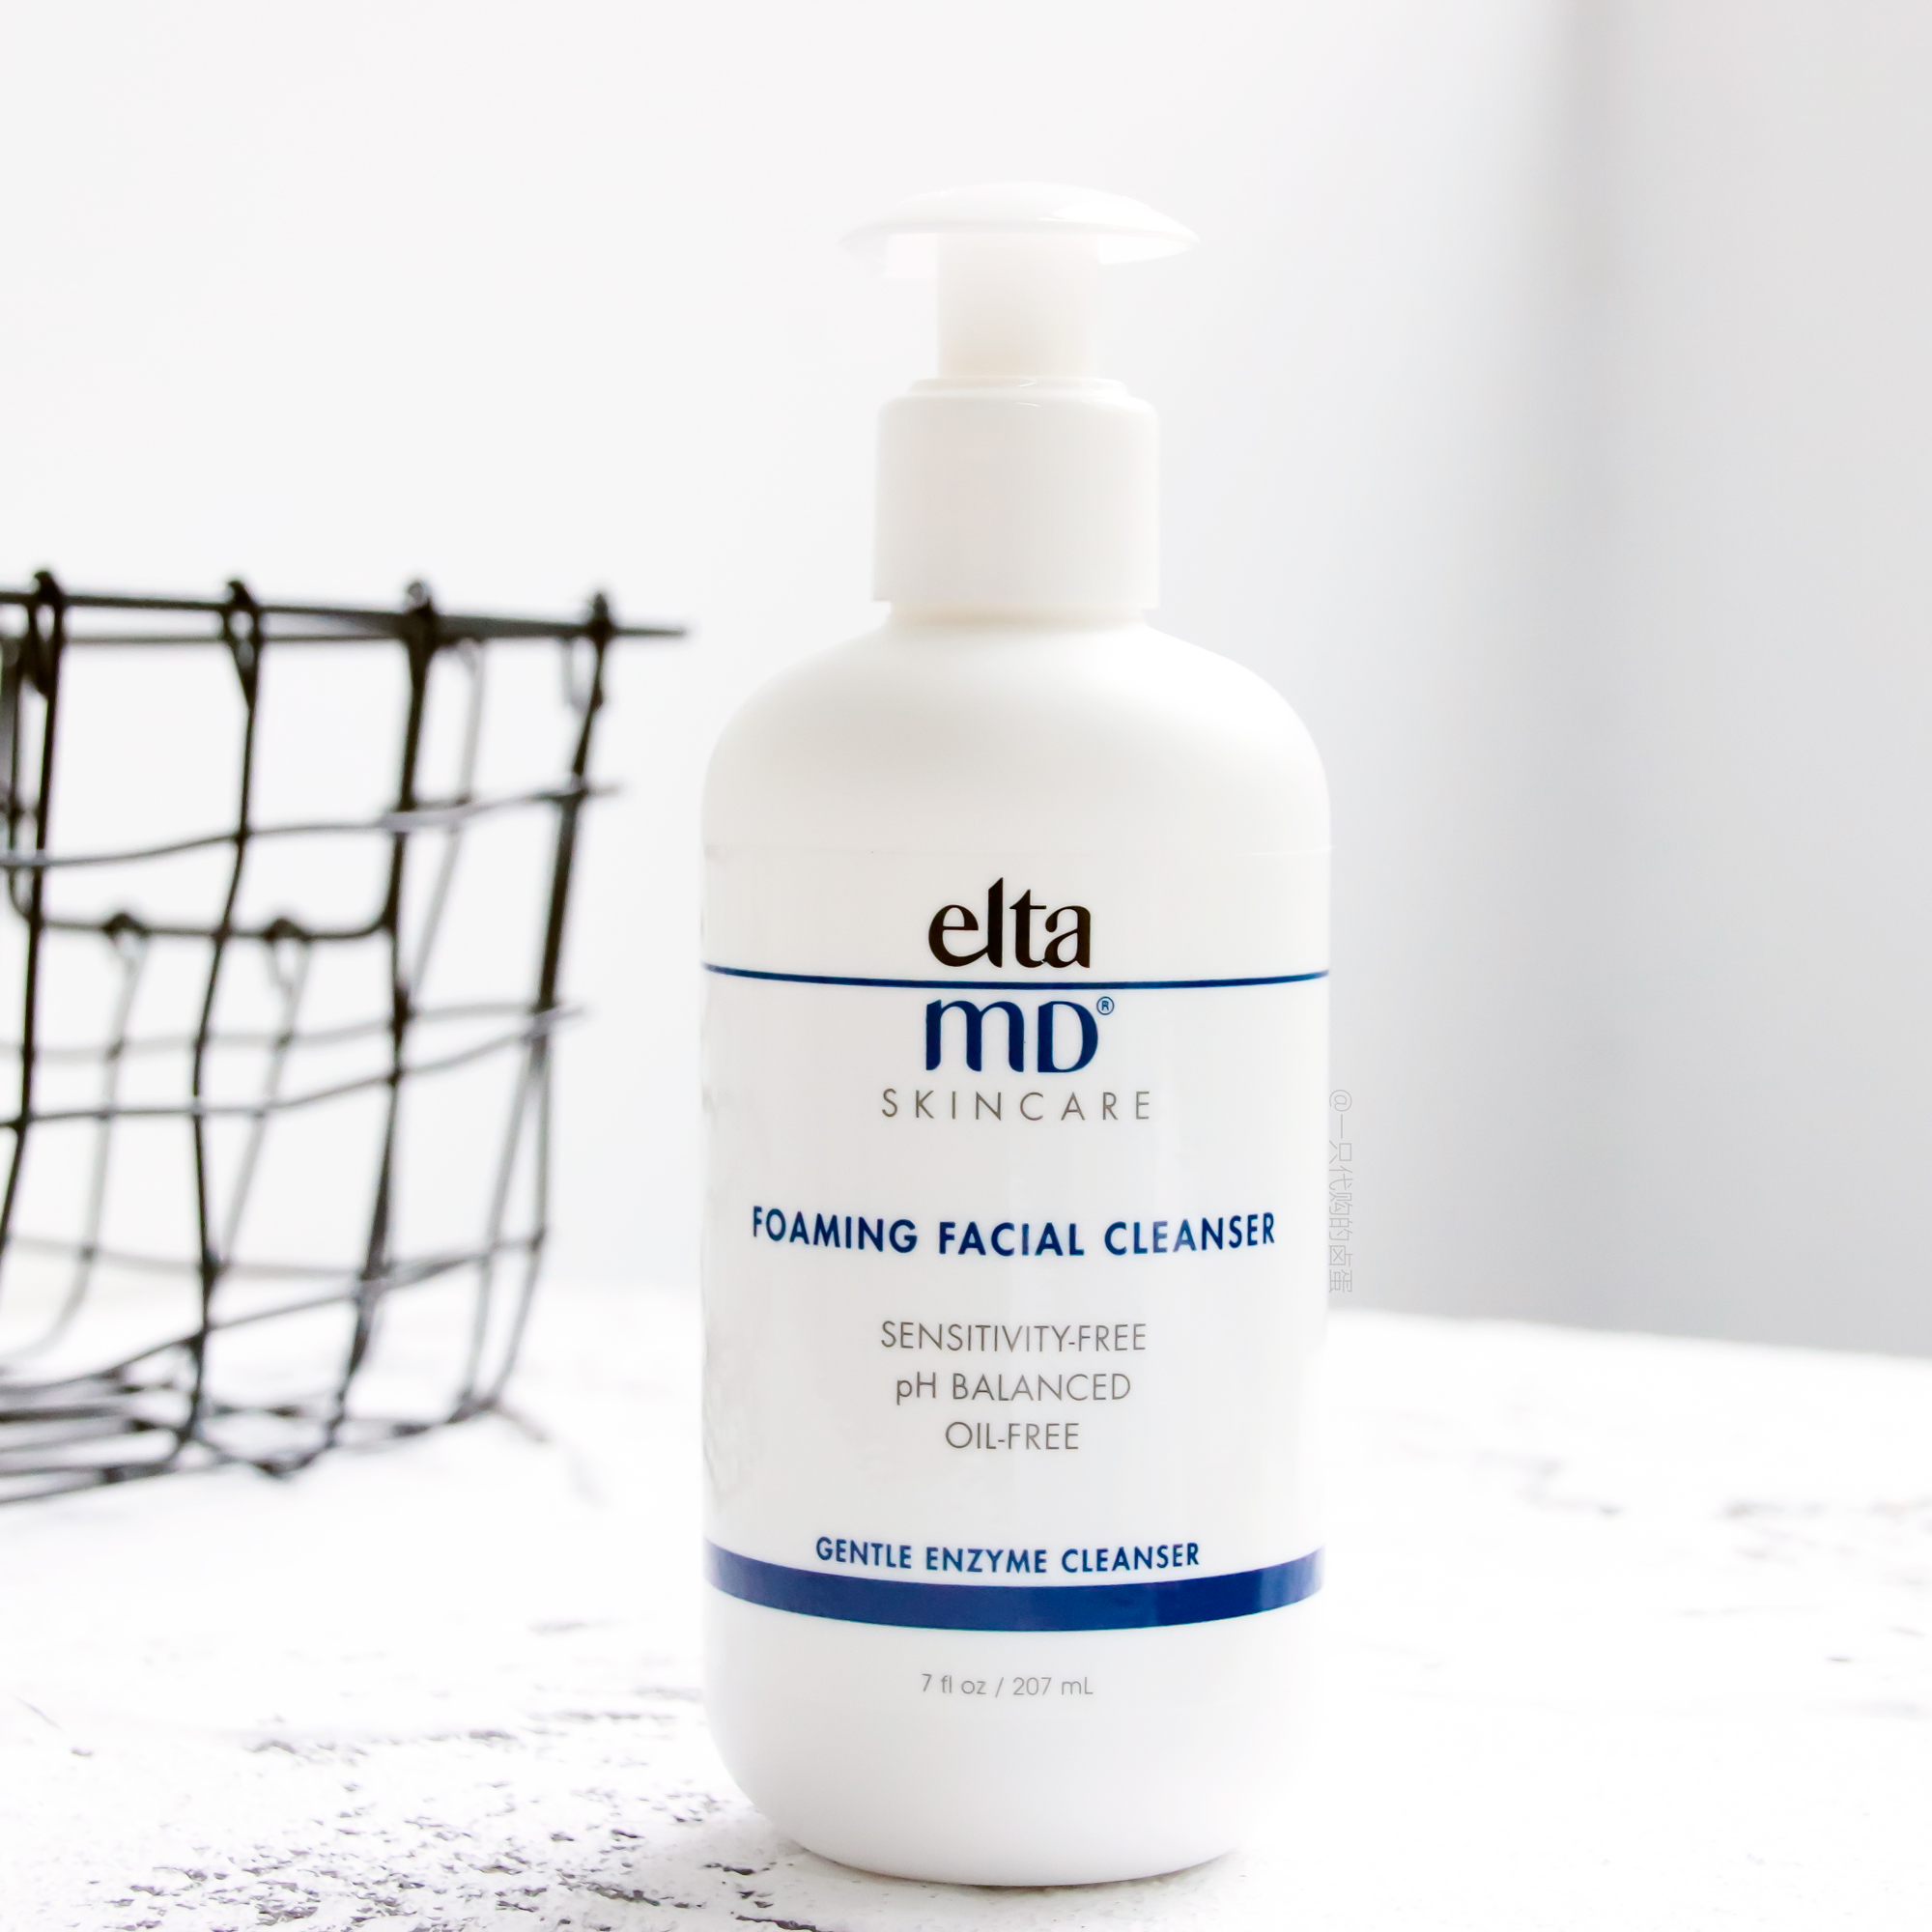 Elta facial cleanser